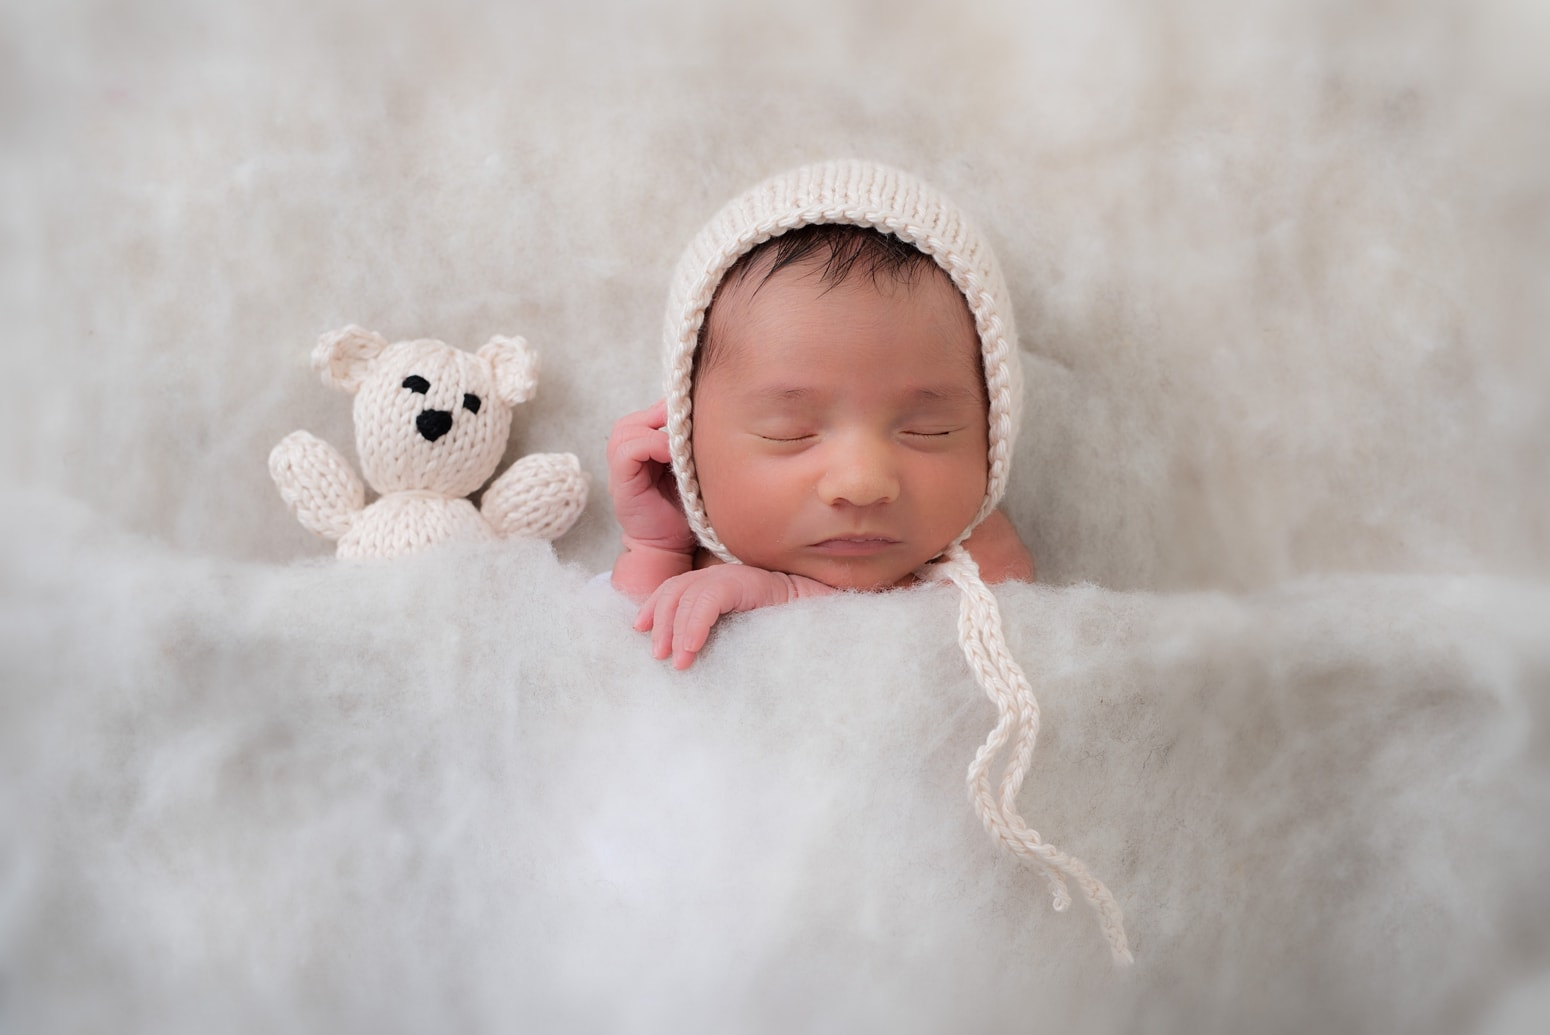 Pictonat_Newborn_Henry_070717_0206_WEB